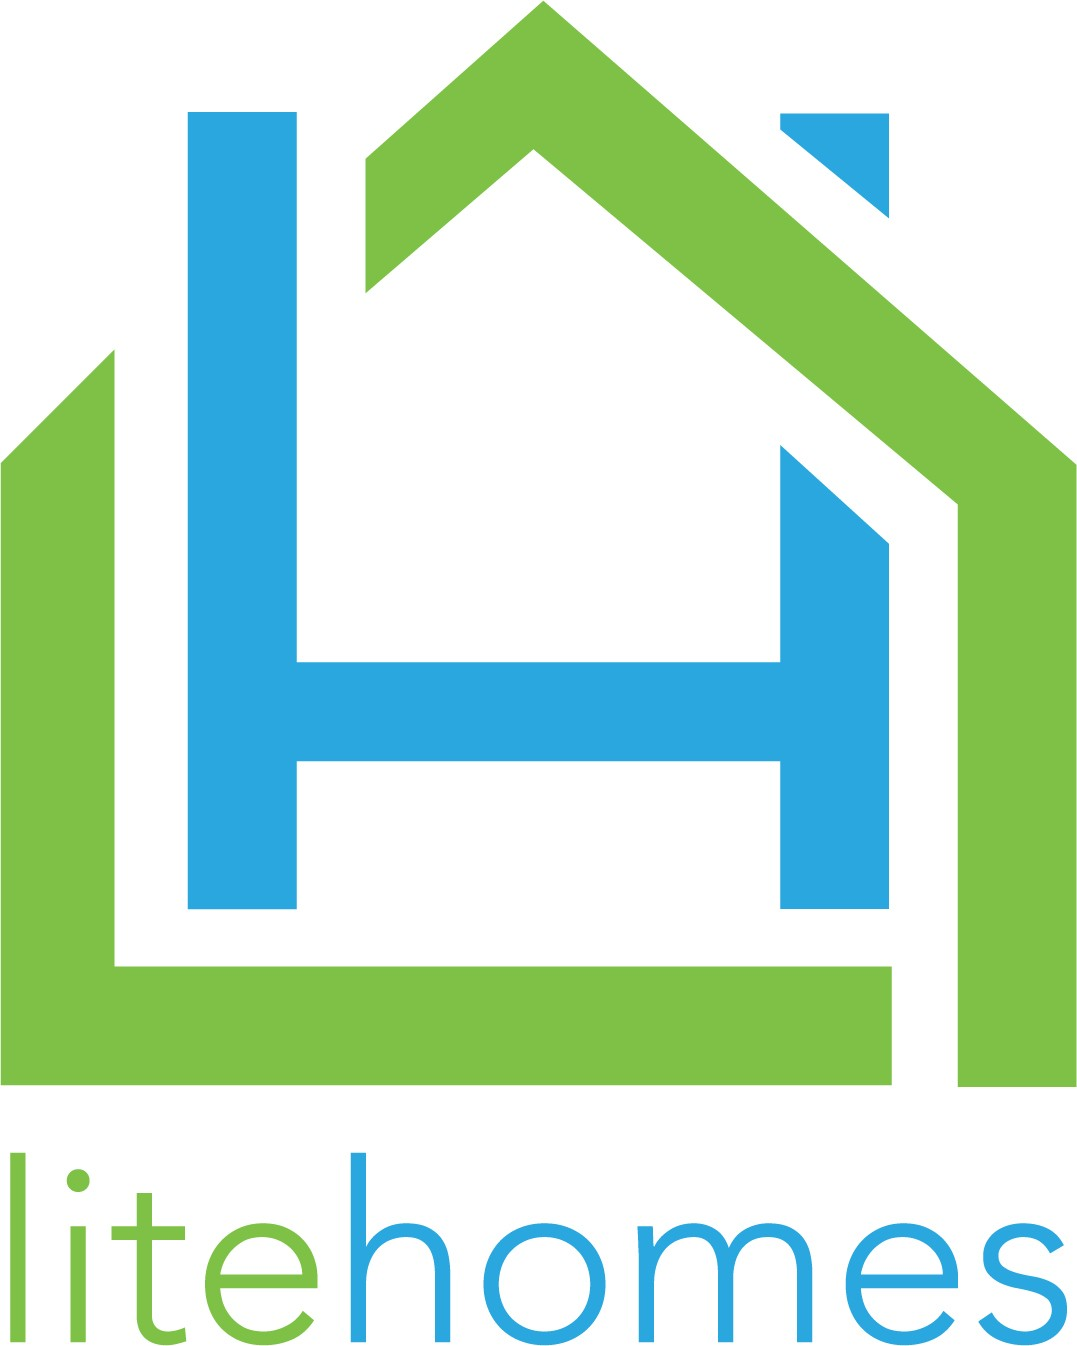 redT LiteHomes: New Construction Energy-Efficient Homes in Denver, CO